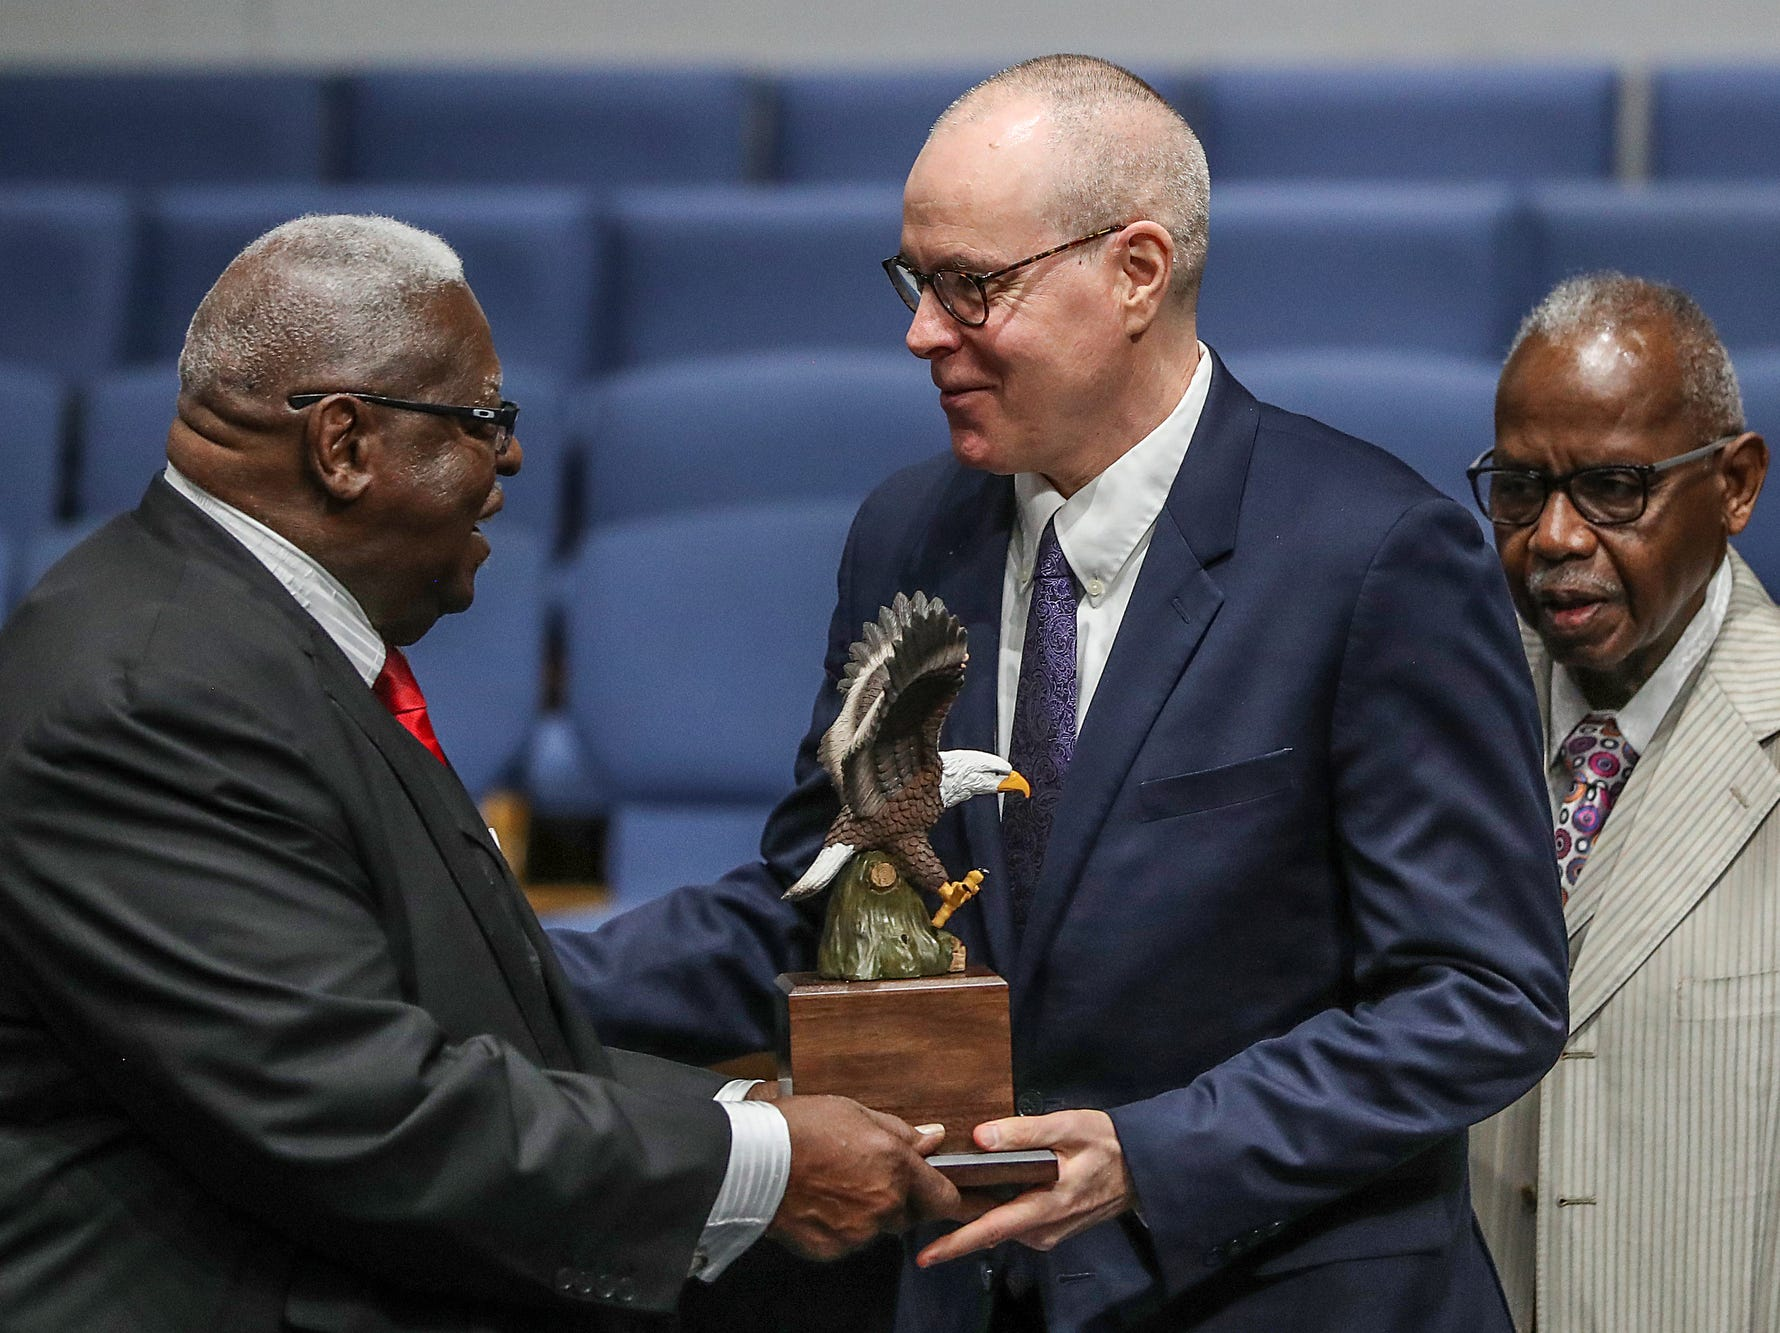 Rev. Dr. Fitzhugh Lyons hands the Faith Based President's Award to Fran Quigley, during a service celebrating the anniversary of the Emancipation Proclamation at Olivet Missionary Baptist Church in Indianapolis, Tuesday, Jan. 1, 2019. Quigley is a law professor at Indiana University's McKinney School of Law.